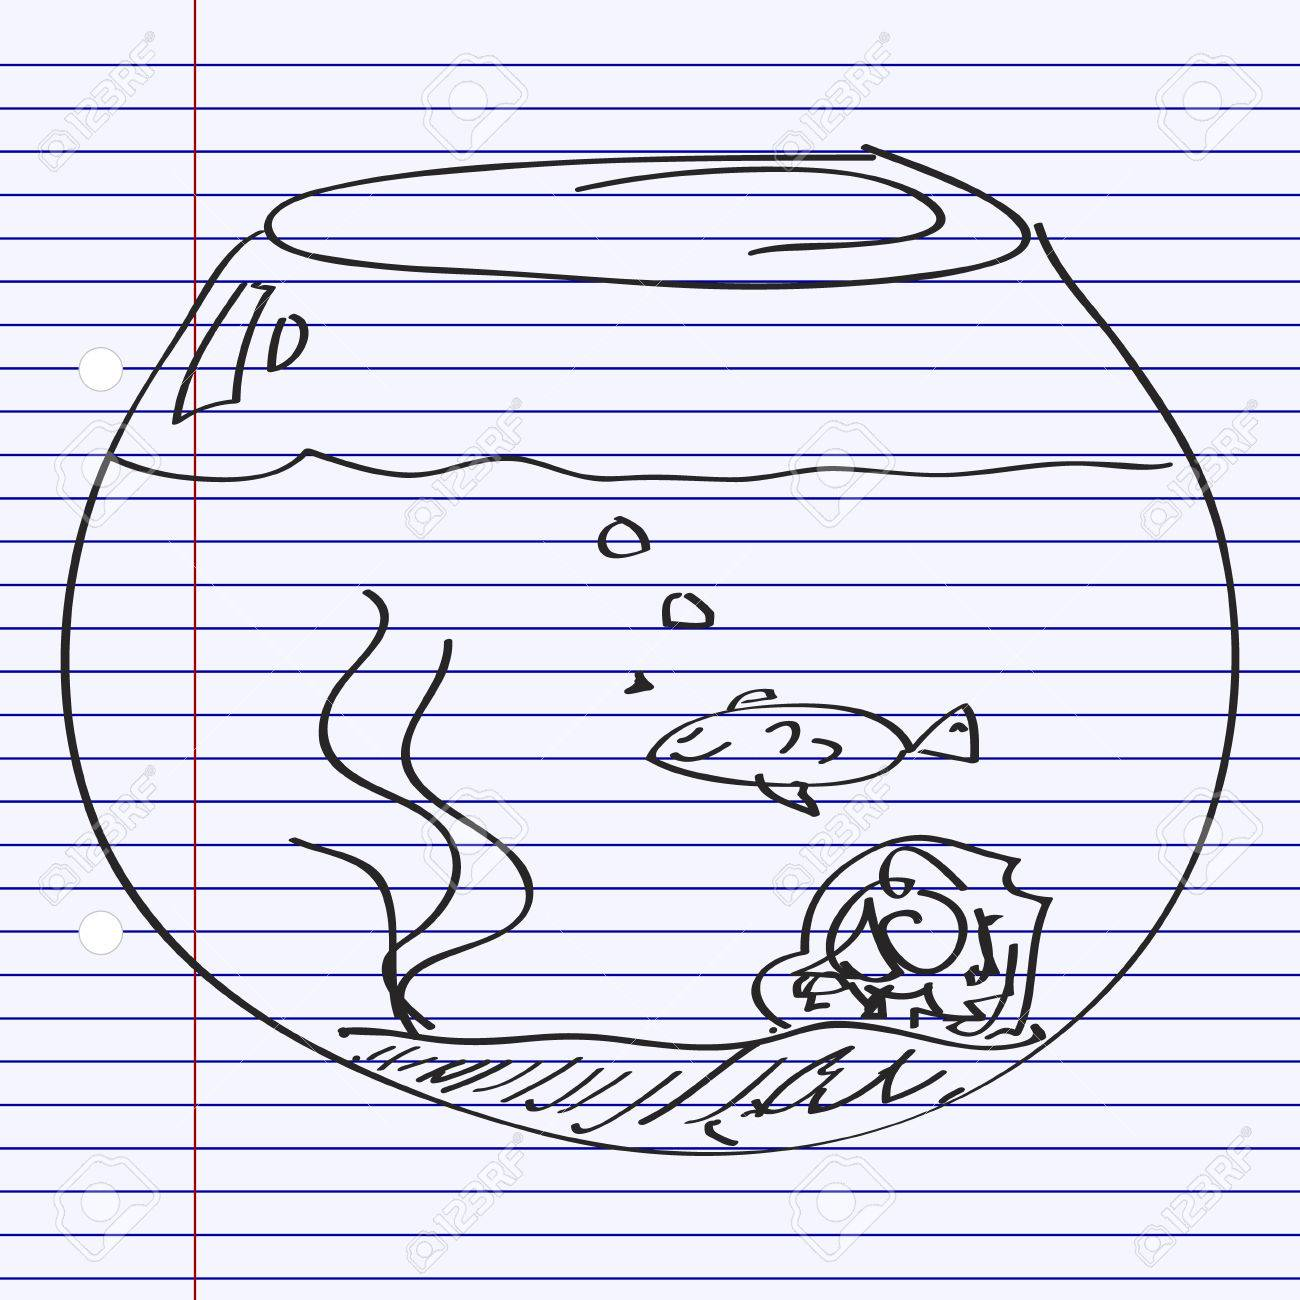 1300x1300 Simple Hand Drawn Doodle Of A Goldfish Bowl Royalty Free Cliparts